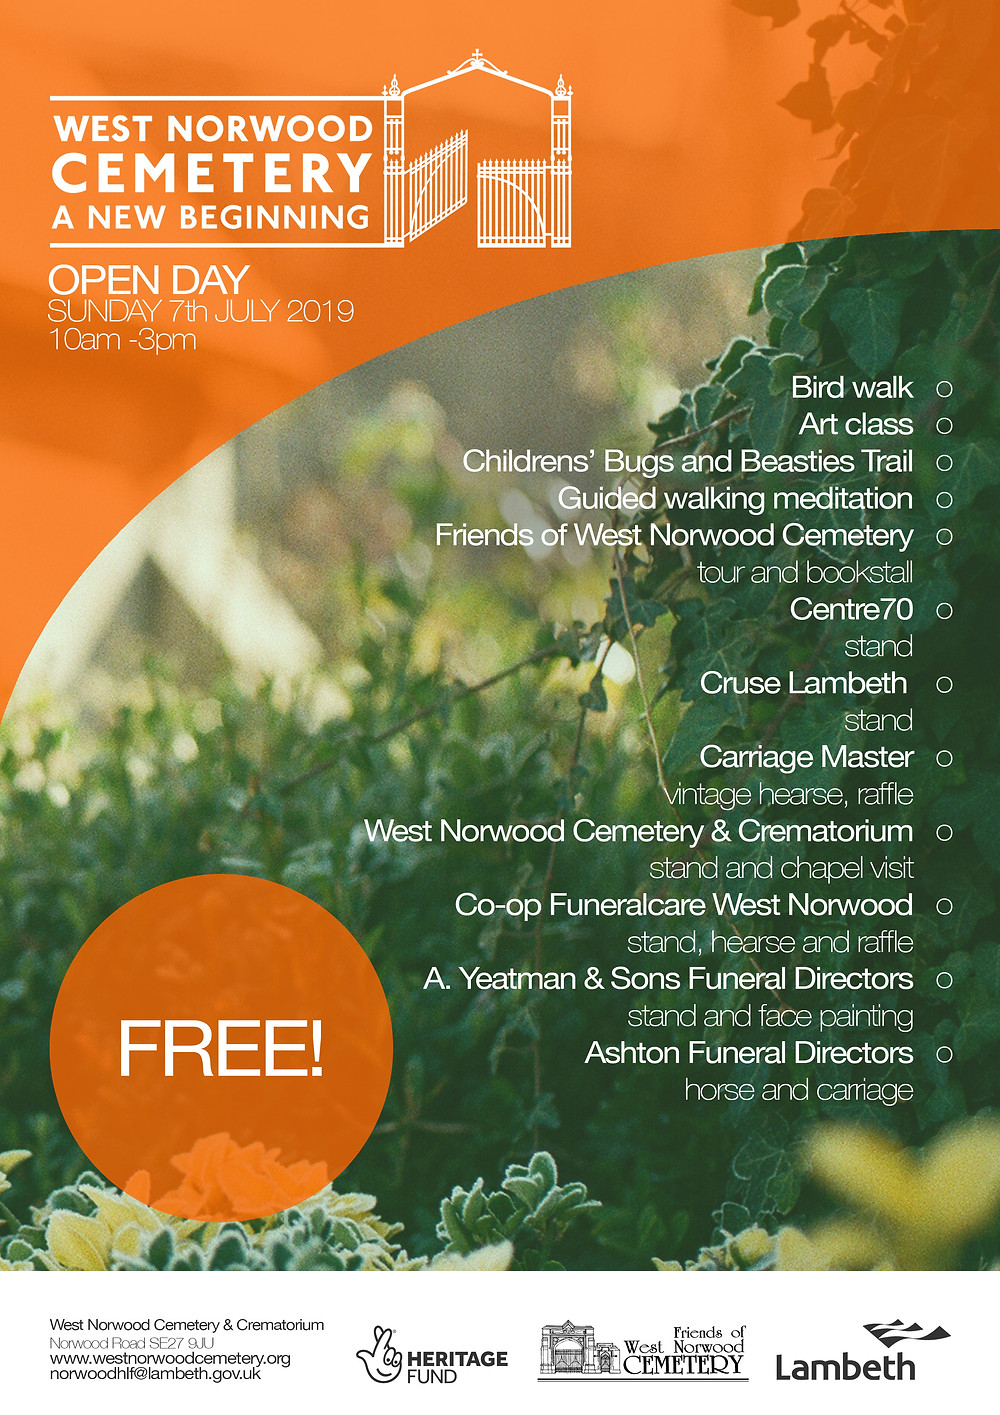 Open Day info - click to download